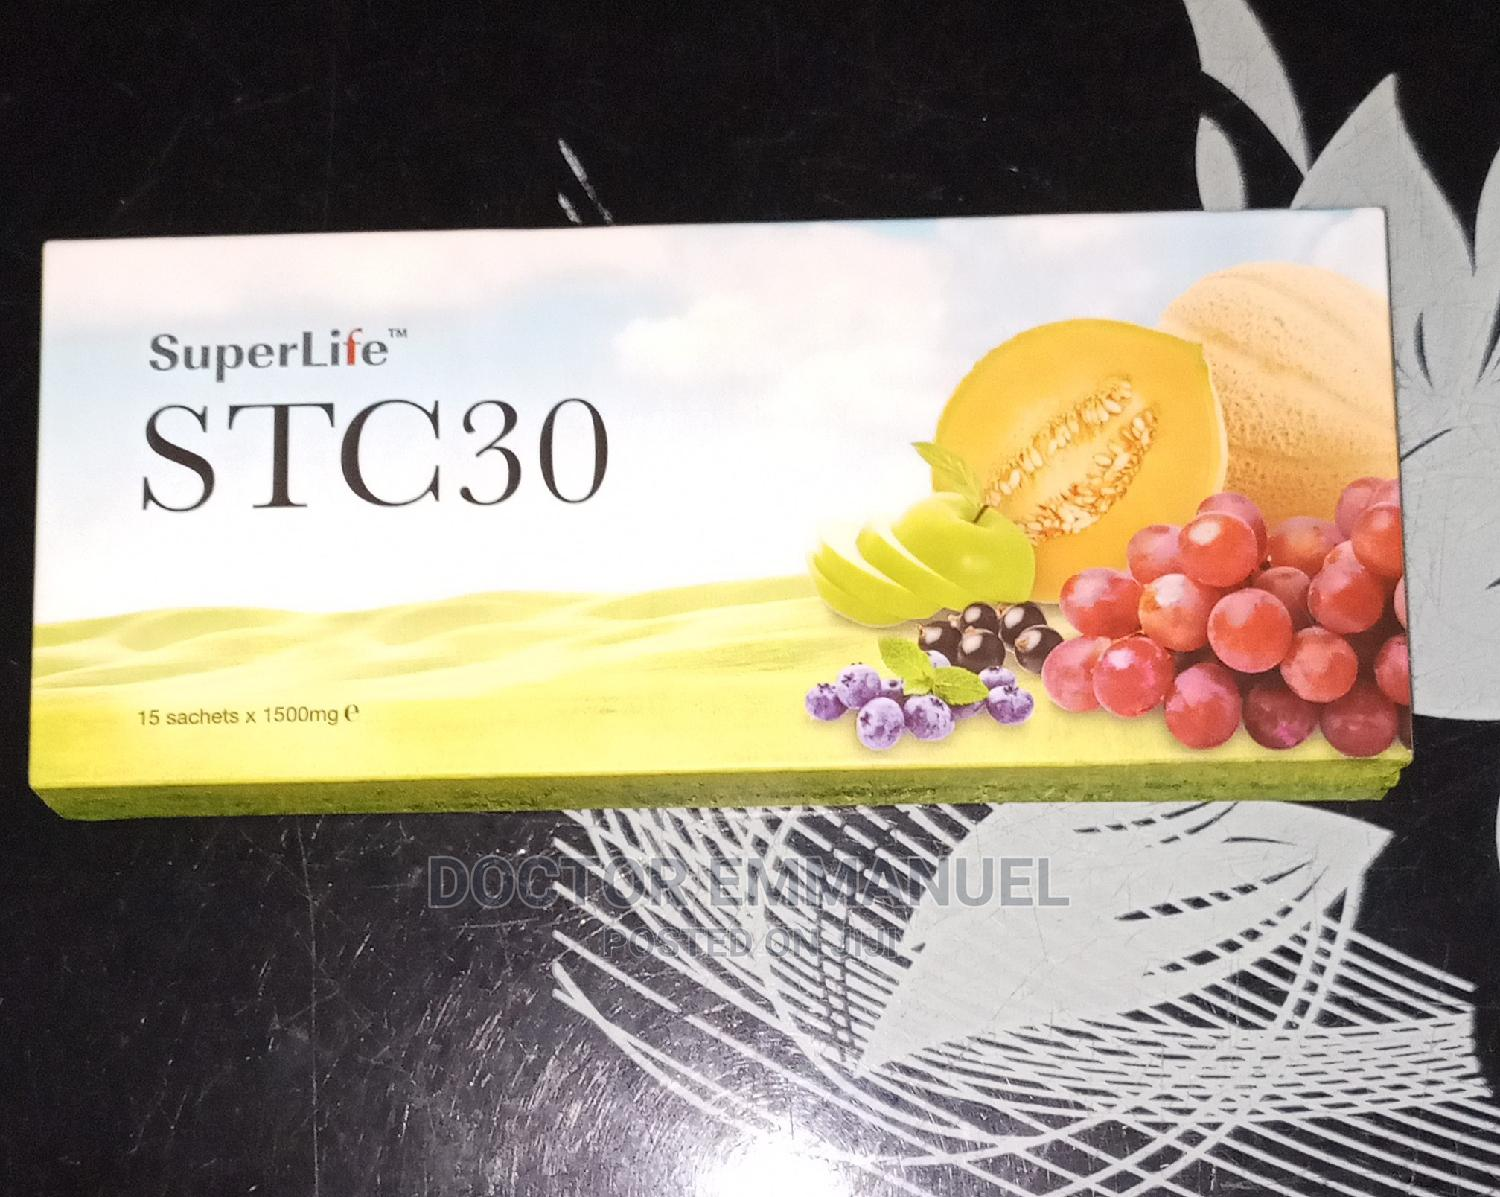 Archive: Stc30 Stemcell Threpy Products